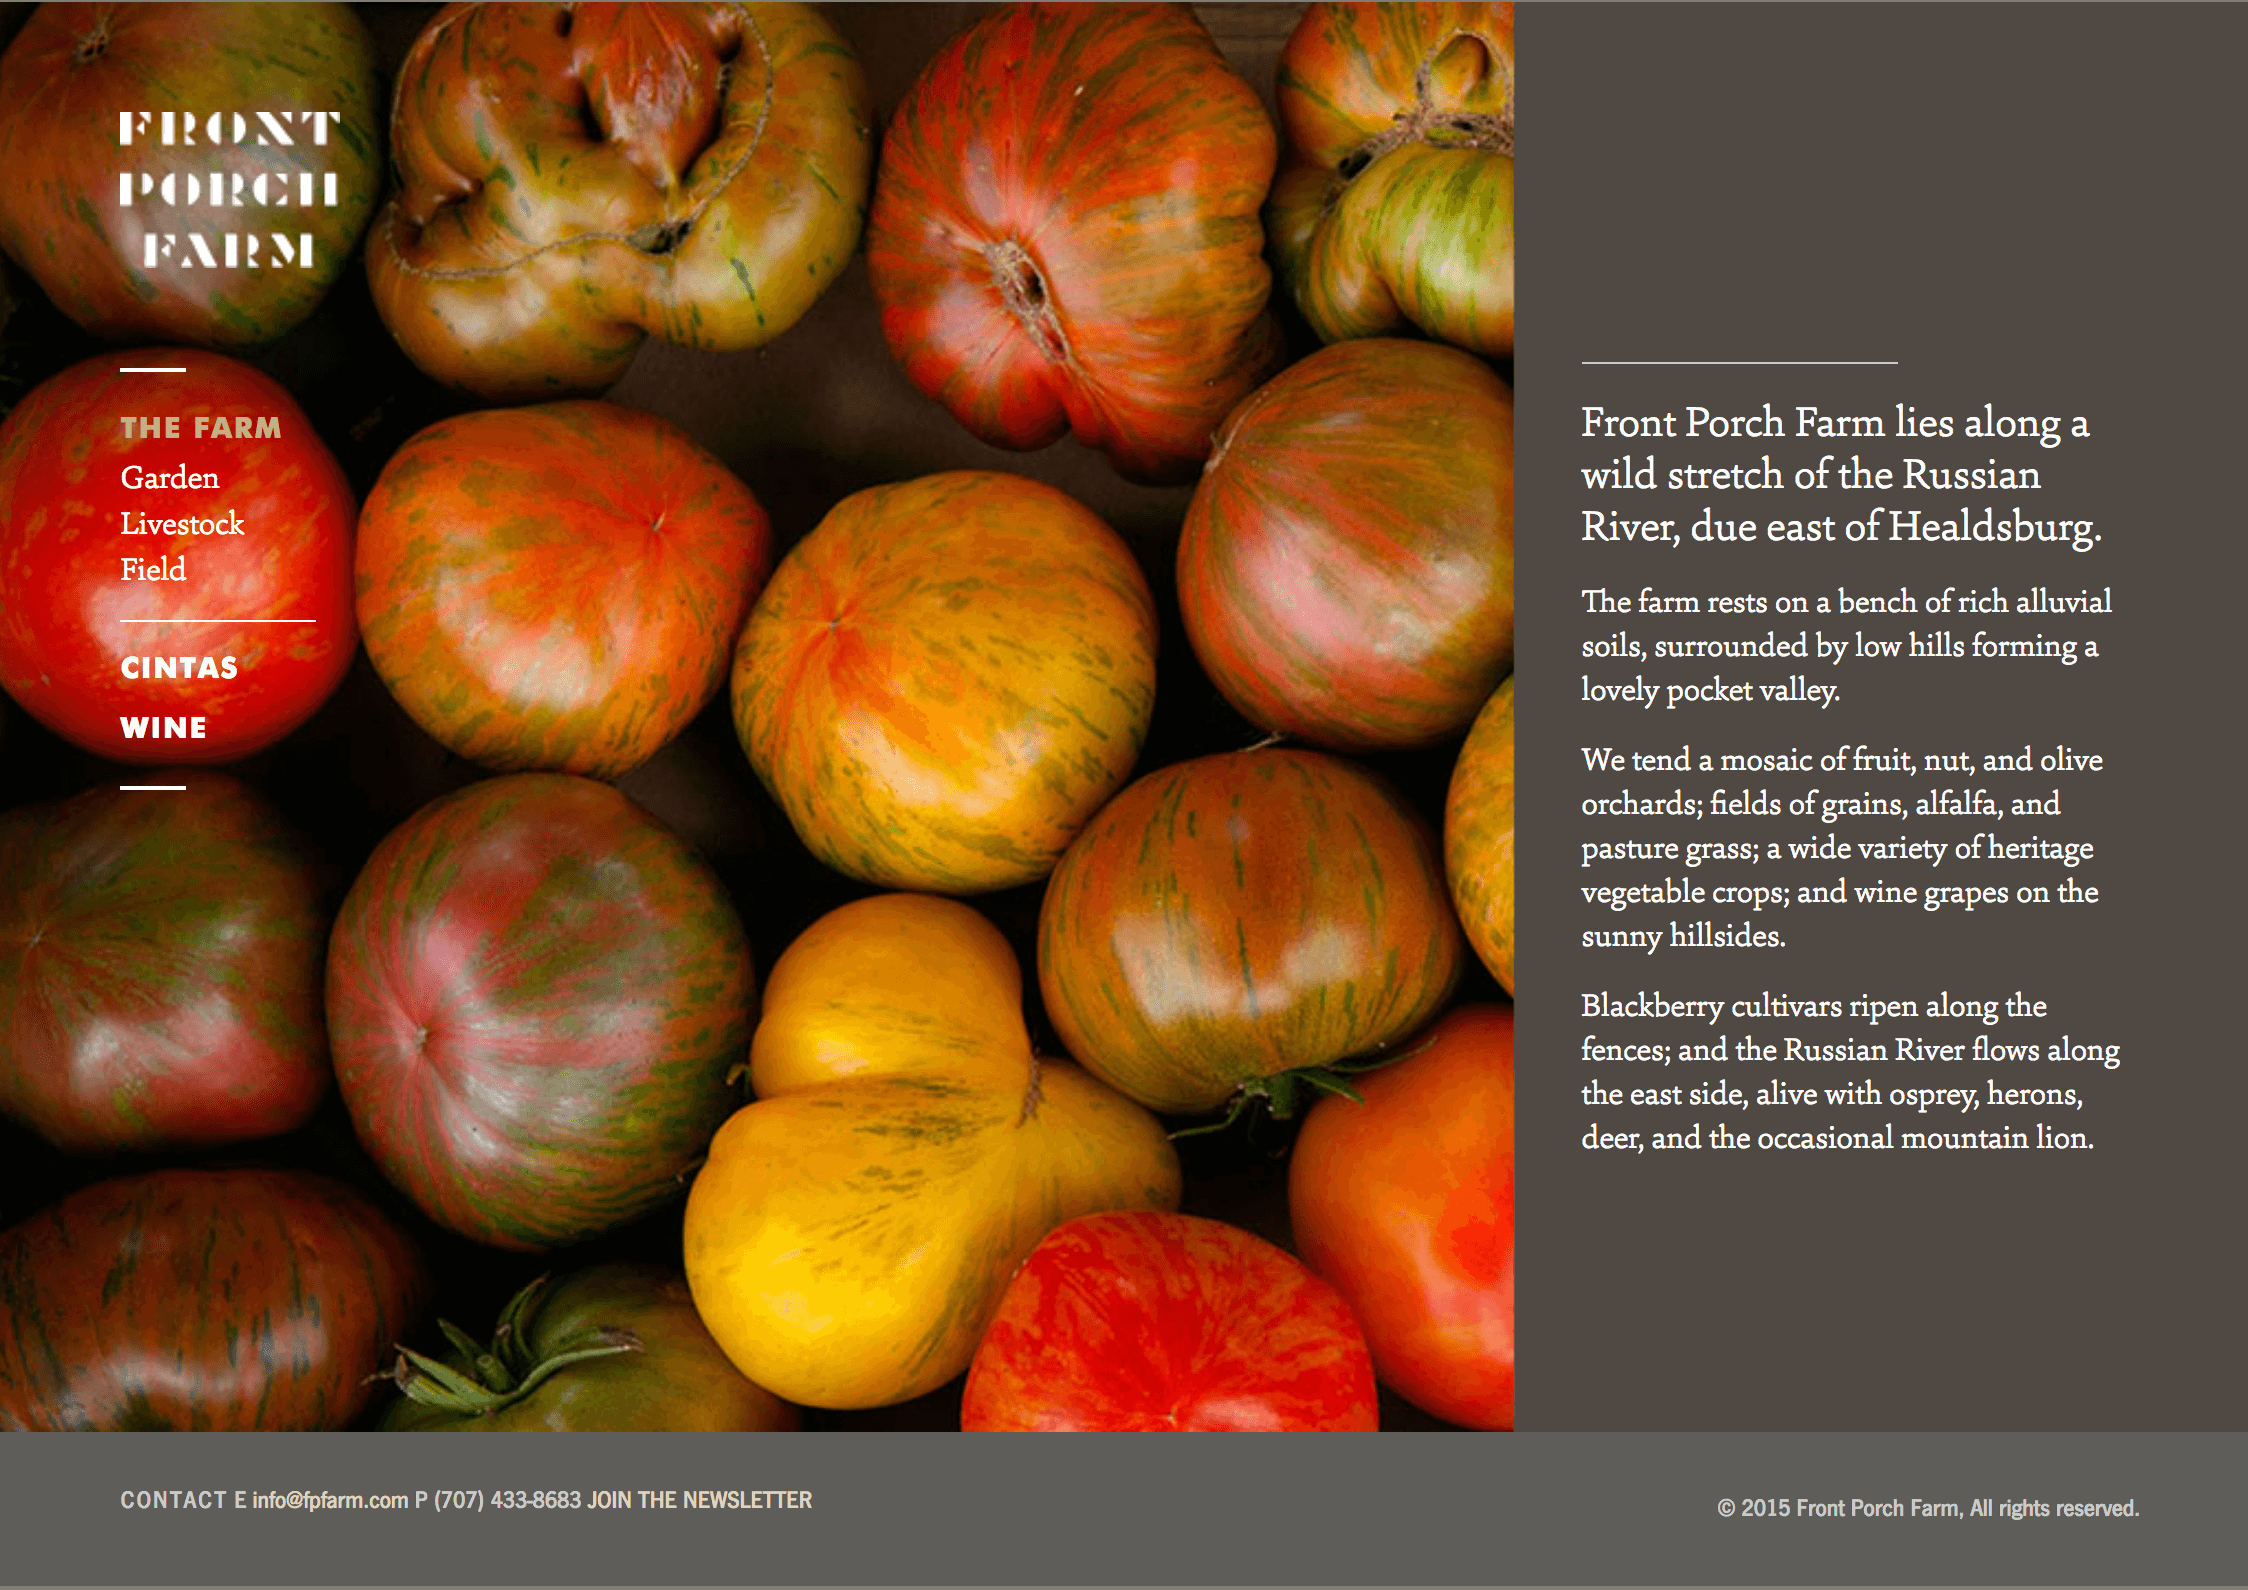 Front Porch Farm webpage featuring colorful tomatoes and text